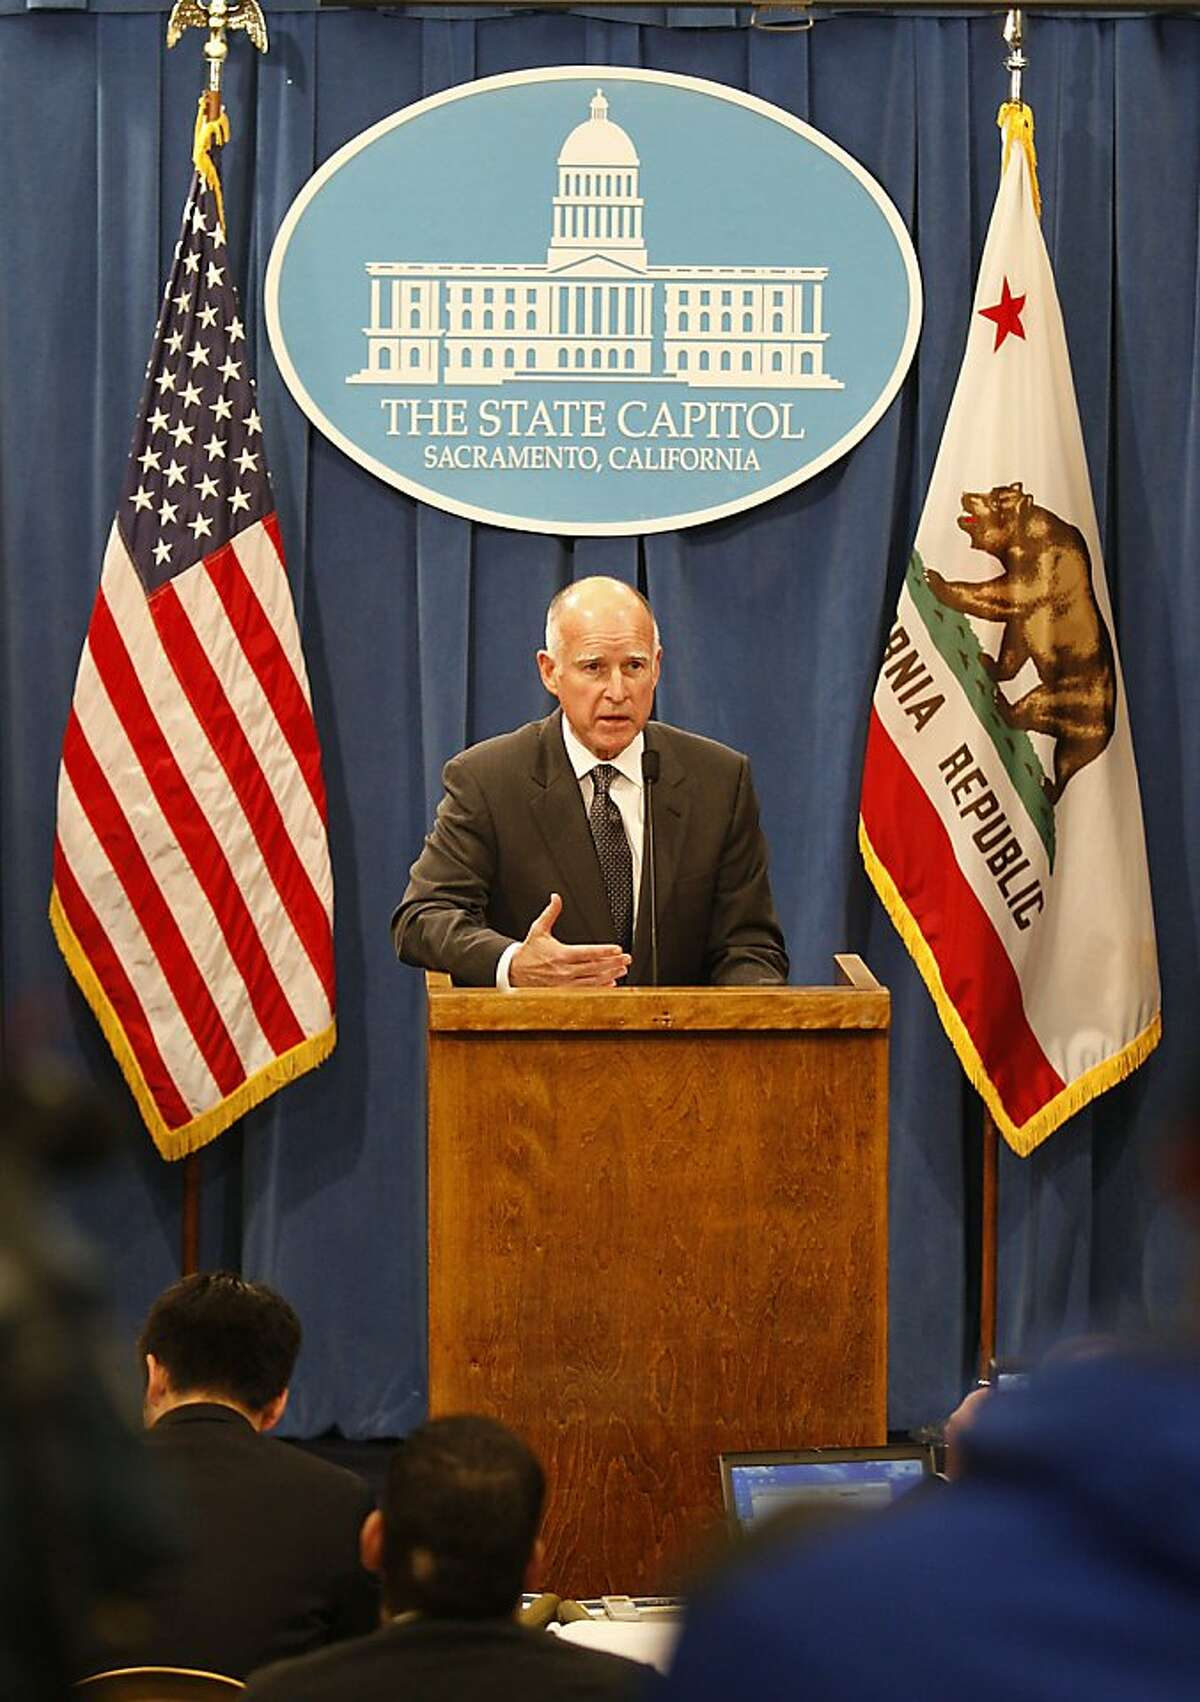 Governor Jerry Brown introduces his January budget proposal on Monday morning, January 10, 2011, at the state capitol in Sacramento, Calif.